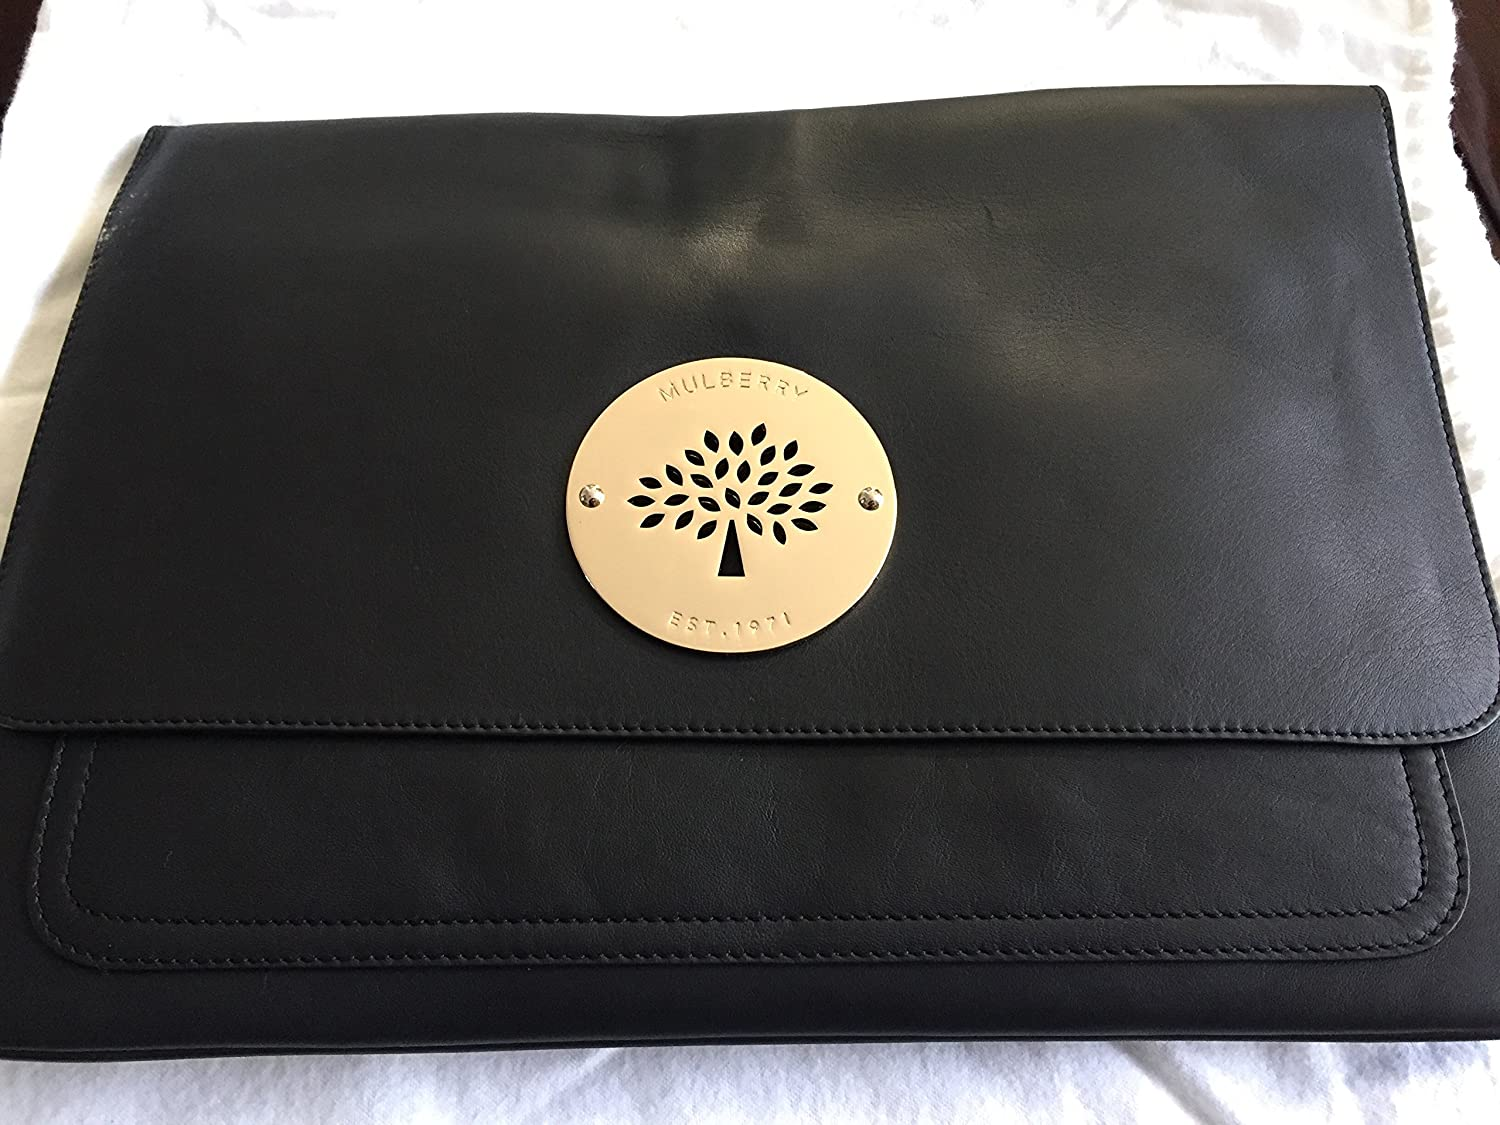 Mulberry Daria Laptop Sleeve   Document Holder  Amazon.co.uk  Office  Products 879acec538d42